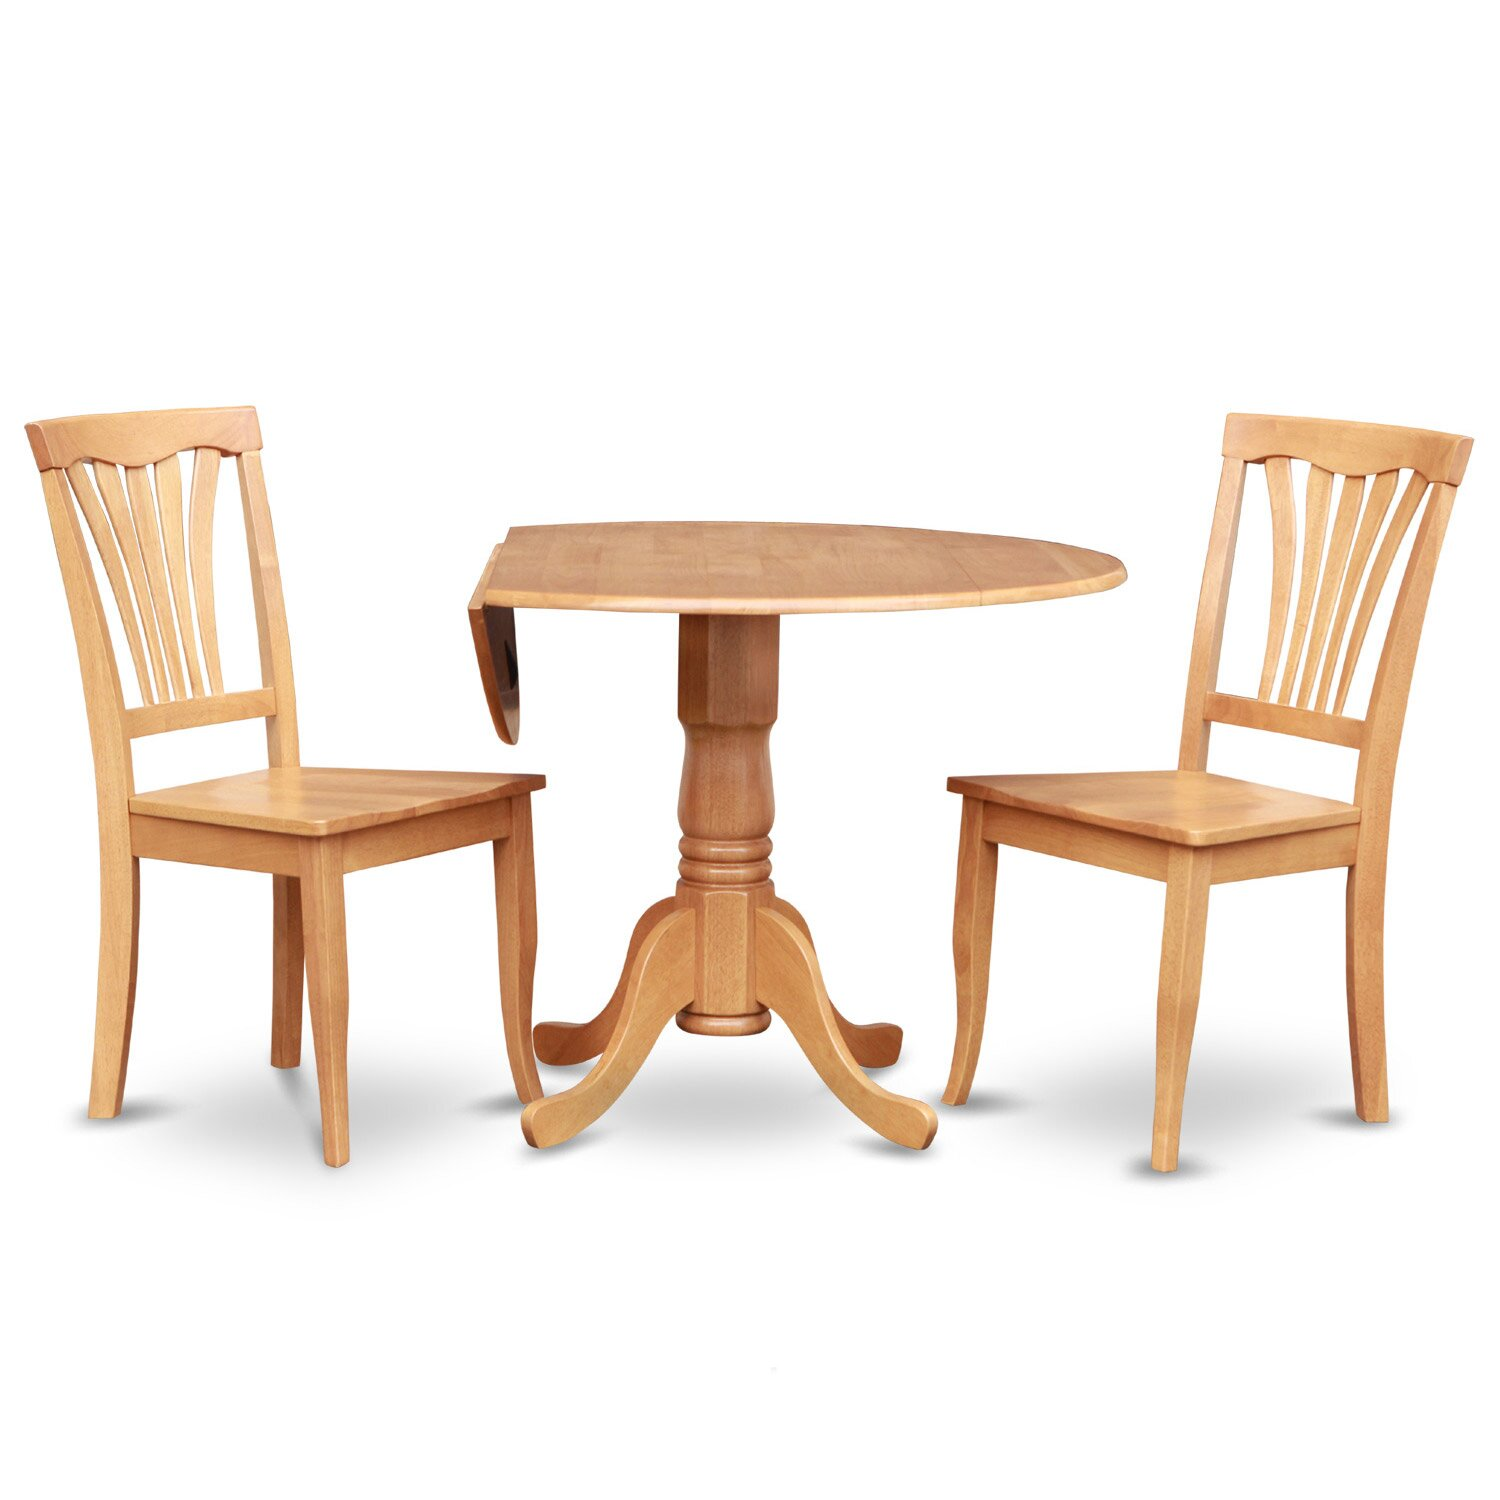 Wooden importers dublin 3 piece dining set reviews wayfair for Small dining table with chairs